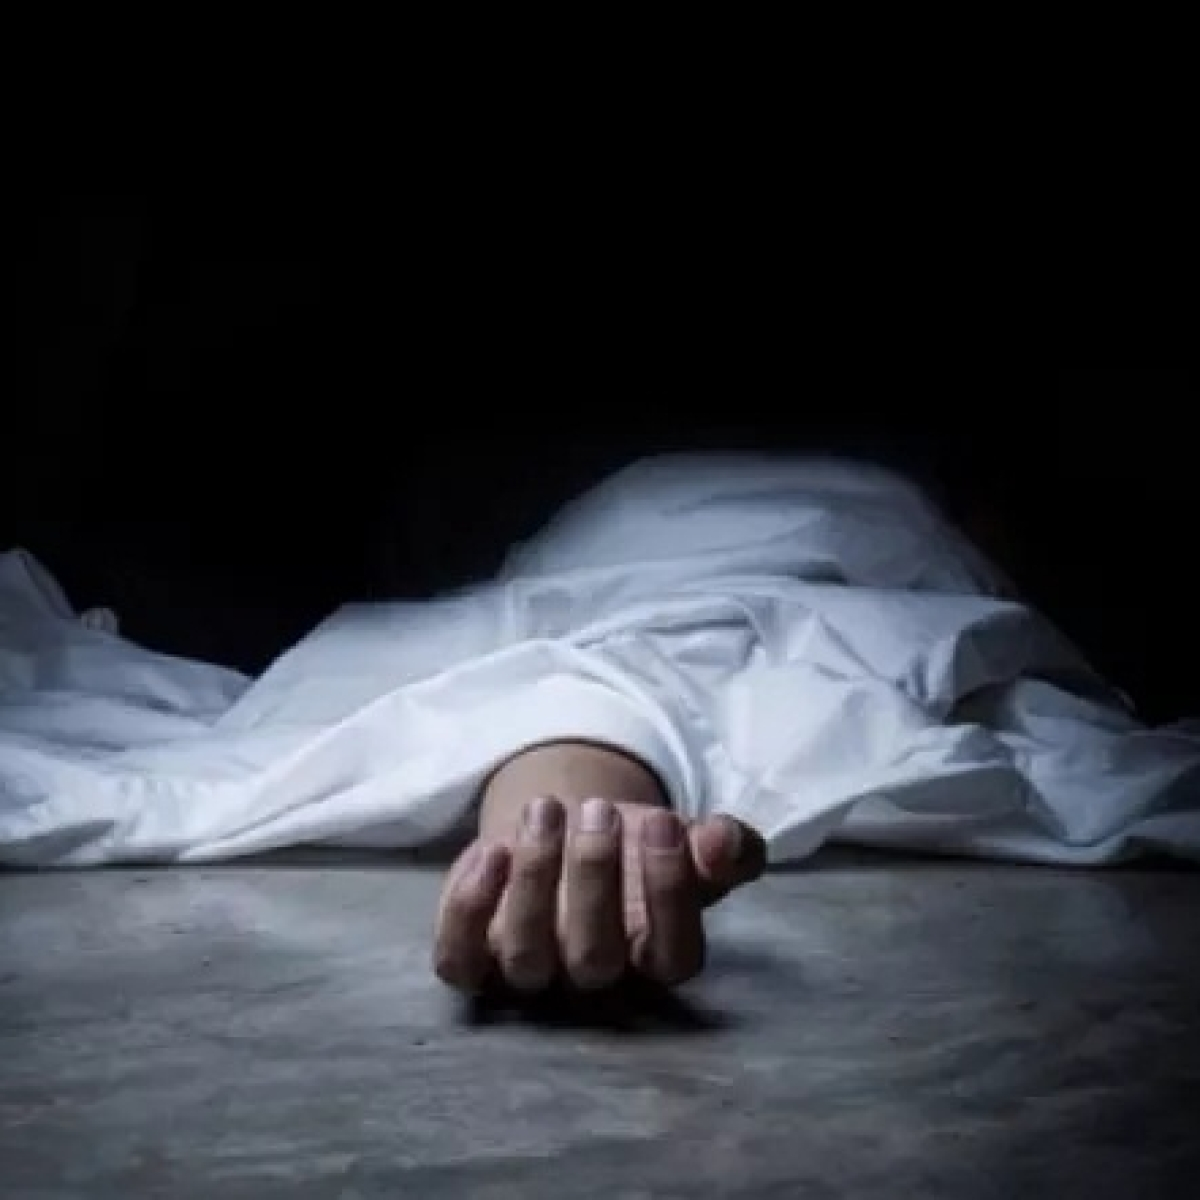 Mumbai: 41-year-old businessman commits suicide after harassment by bank recovery agents